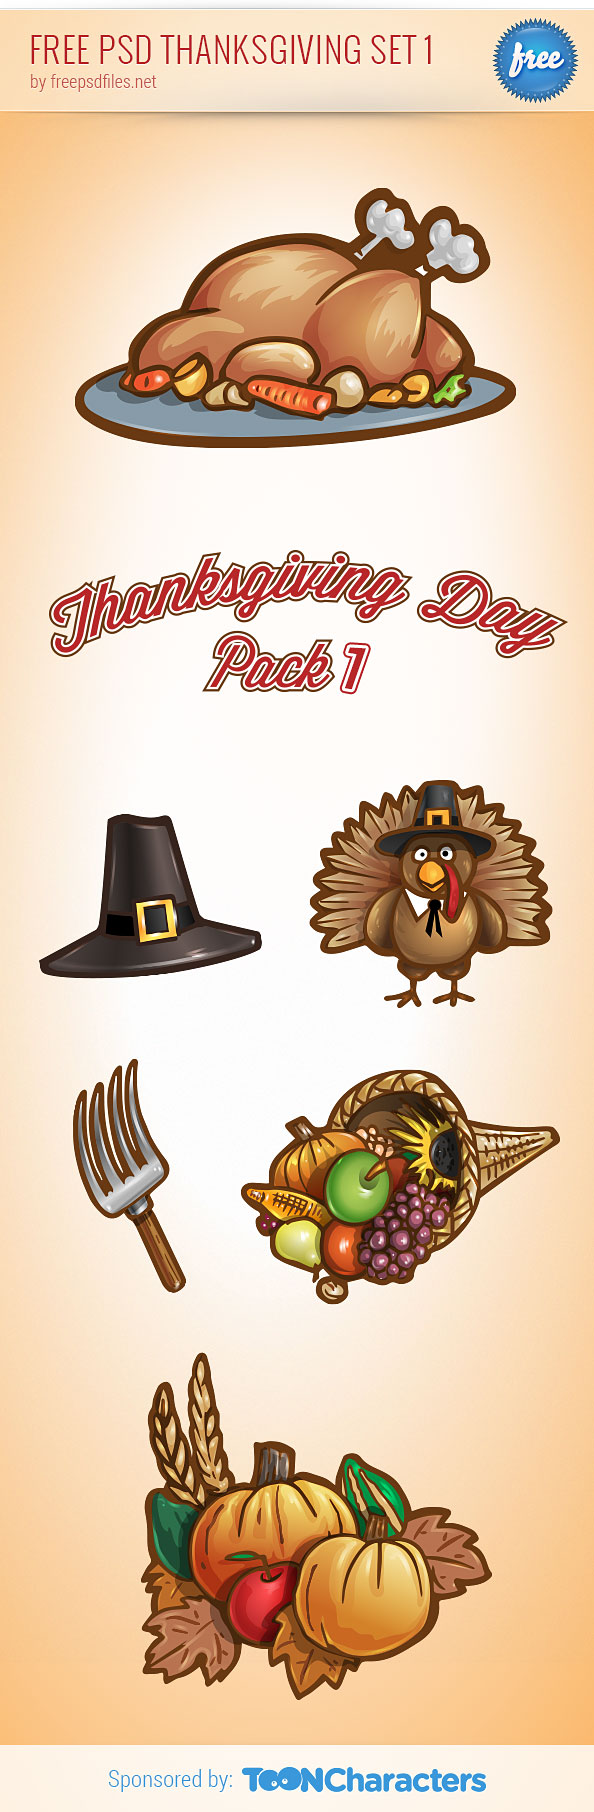 Free PSD Thanksgiving Set Preview